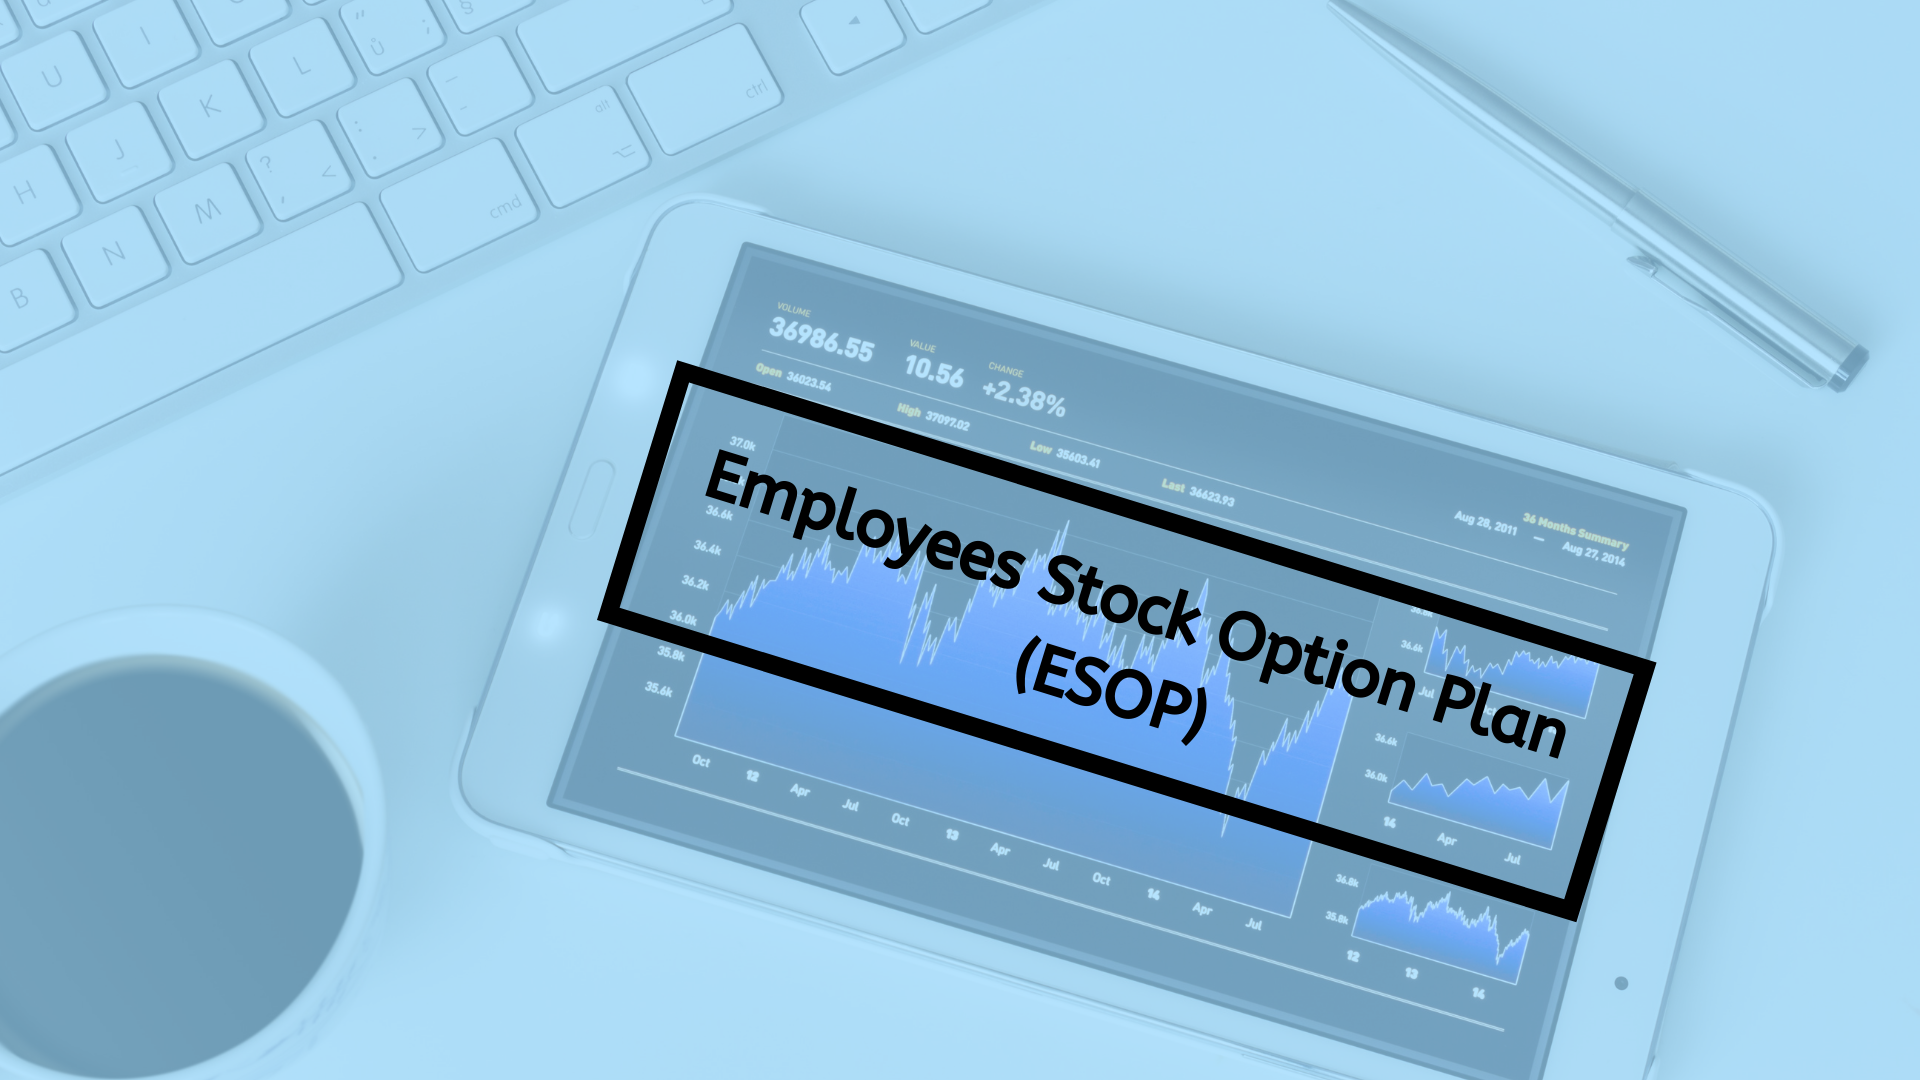 Employees Stock Option Plan (ESOP)